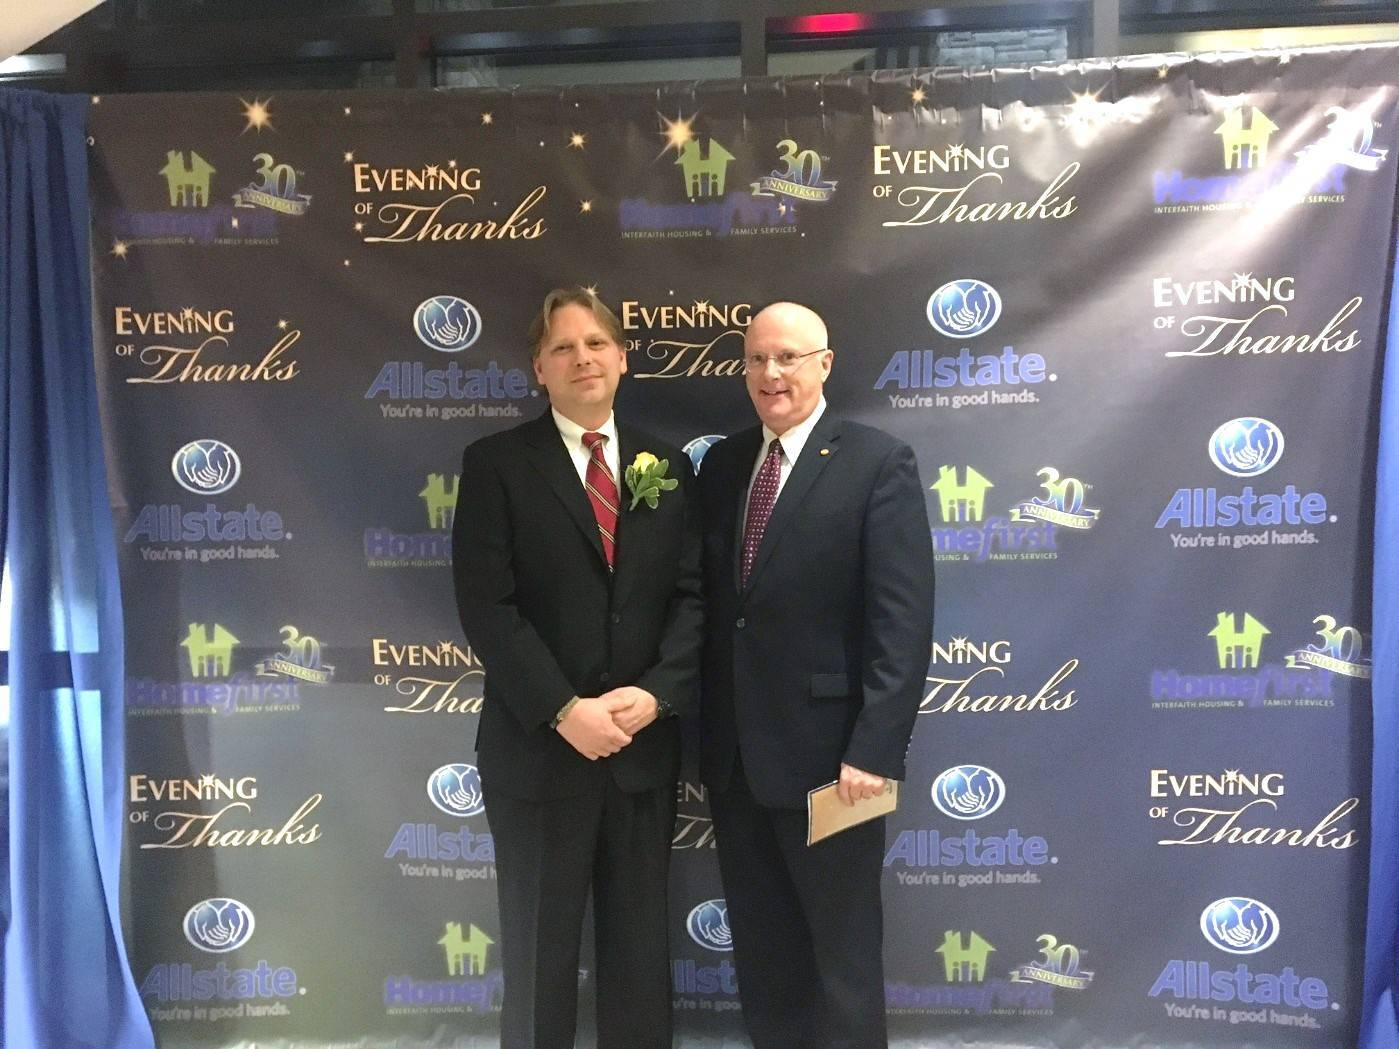 Scotch Plains Allstate Agent Nelson Espeland Honored at Homefirst Evening of Thanks